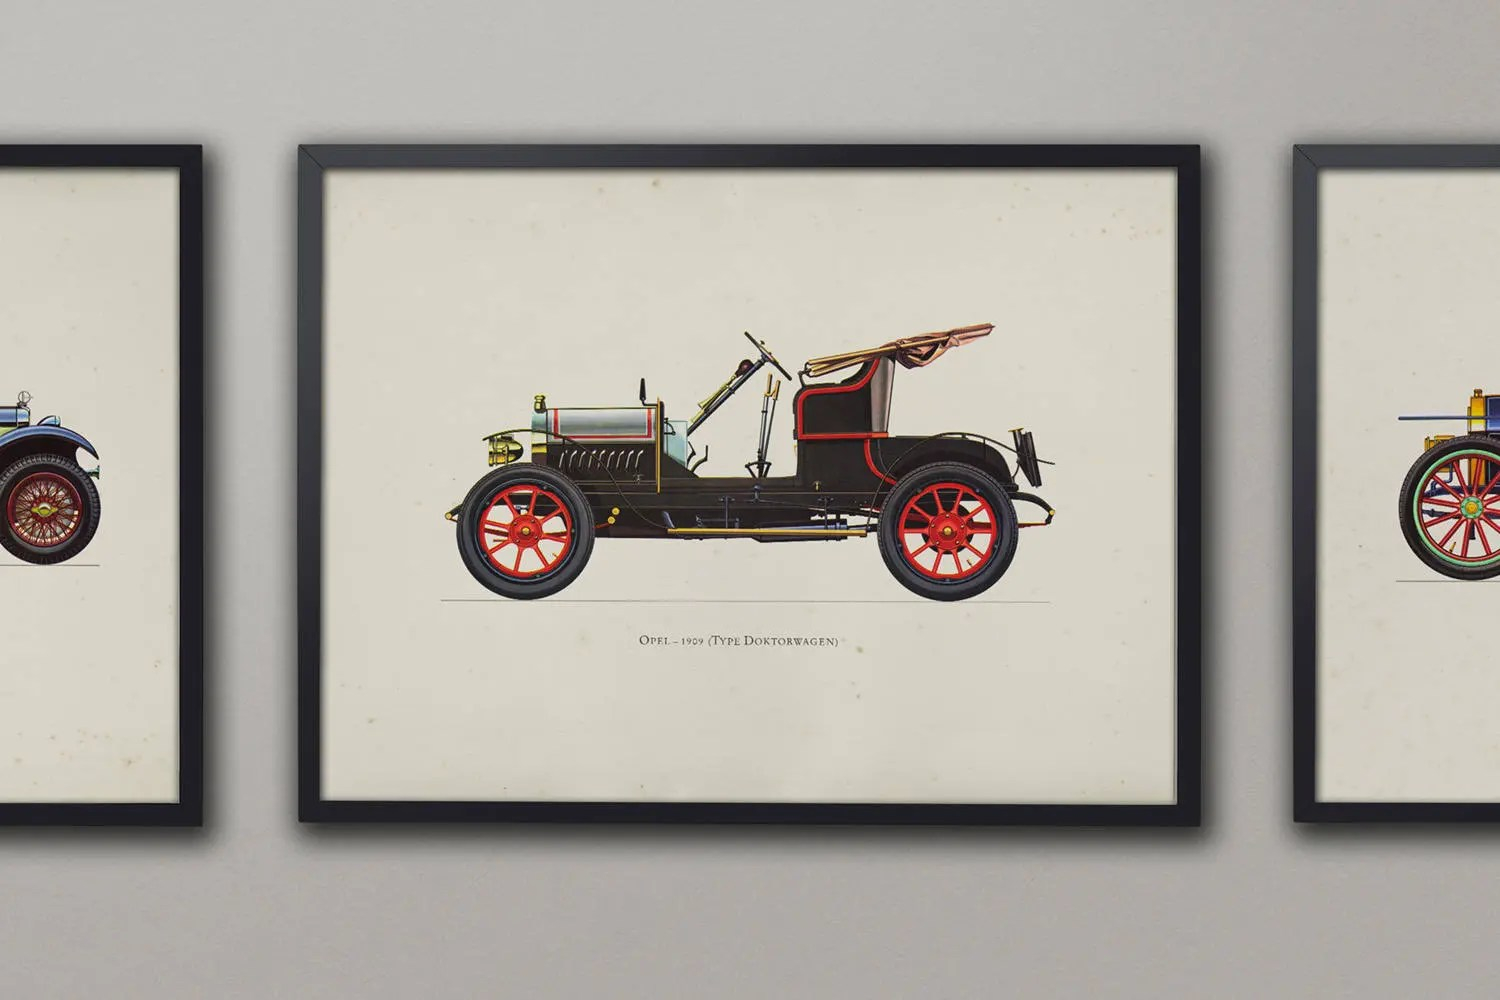 Garage Opel Luxembourg Vintage Opel Antique Car Art Vintage Car Prints Old Dealership Brochures Classic Car Print Gifts For Dads Classic Cars Art Circa 1909